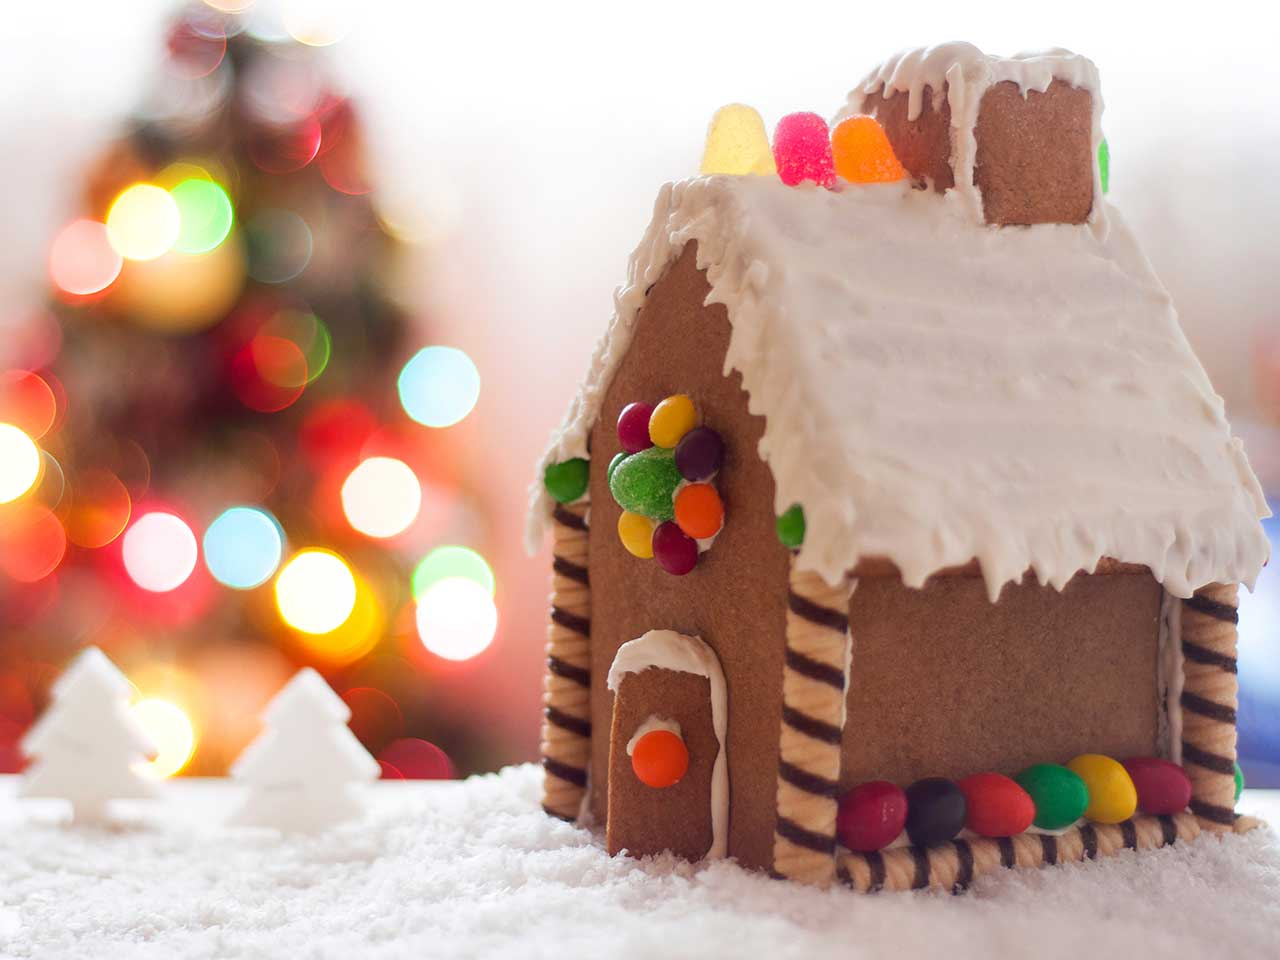 Gingerbread house with Christmas tree in the background